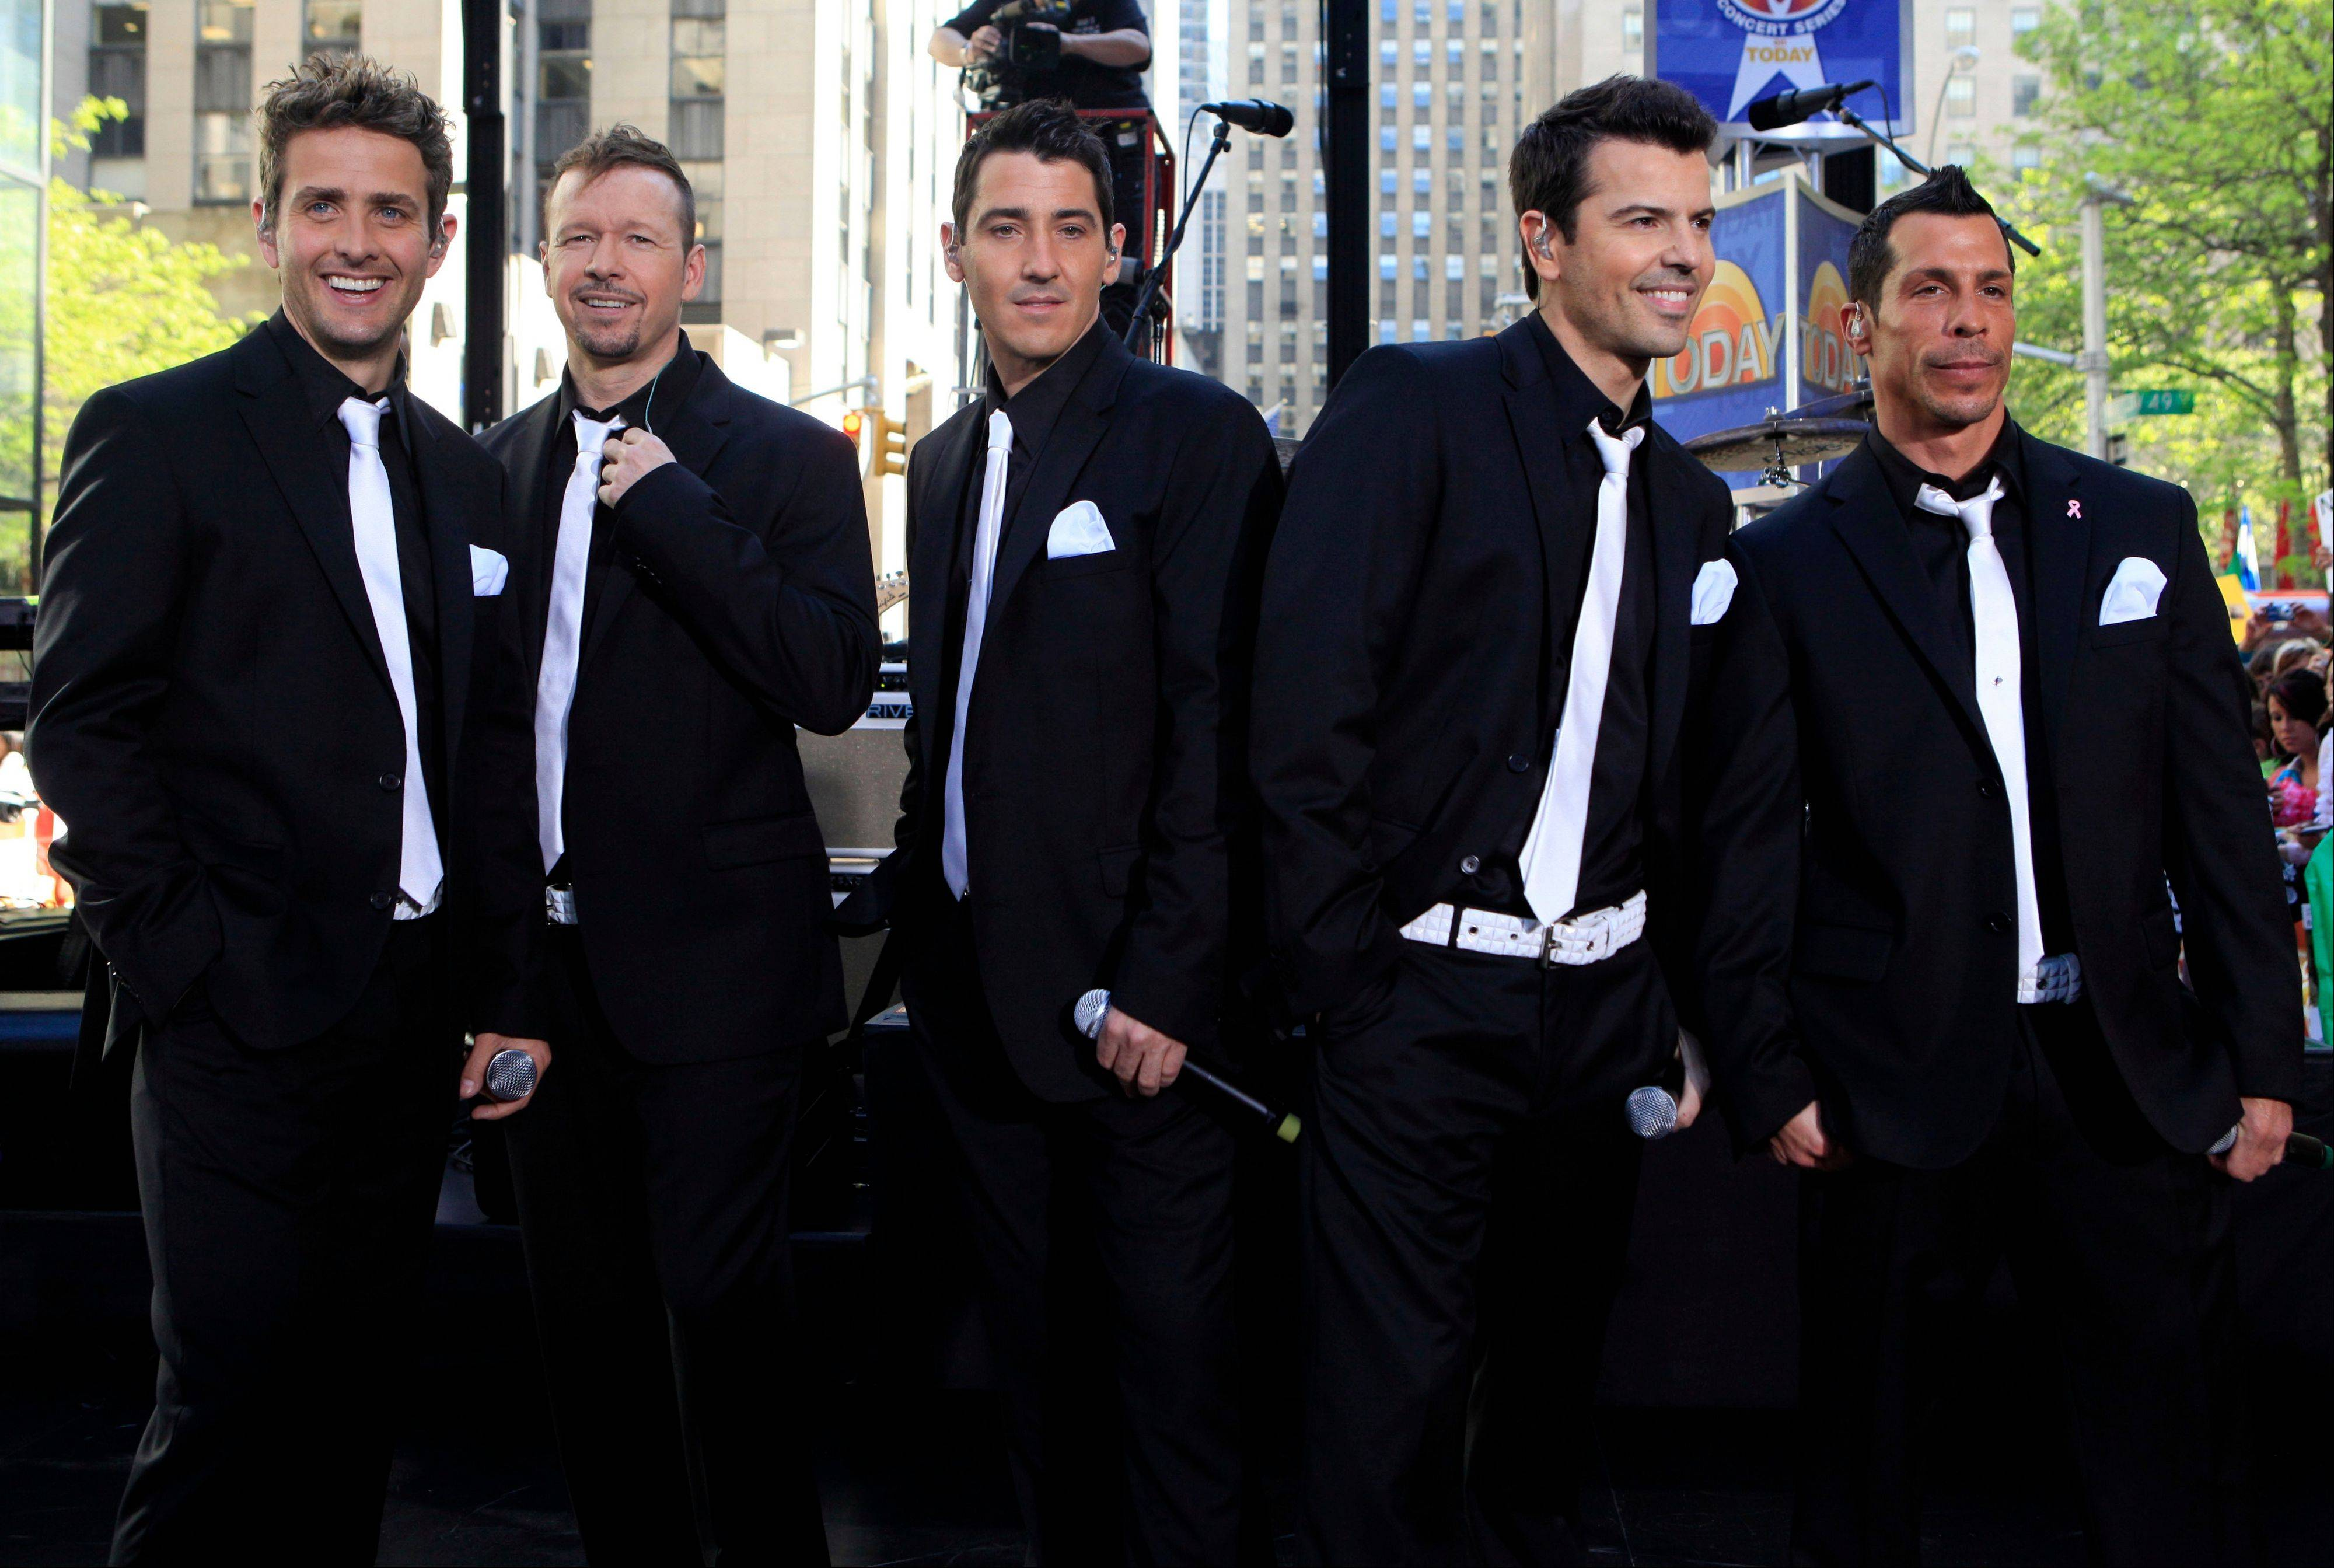 Members of New Kids on the Block � Joey McIntyre, left, Donnie Wahlberg, Jonathan Knight, Jordan Knight and Danny Wood � are teaming up with 98 Degrees and Boyz II Men for a summer tour.